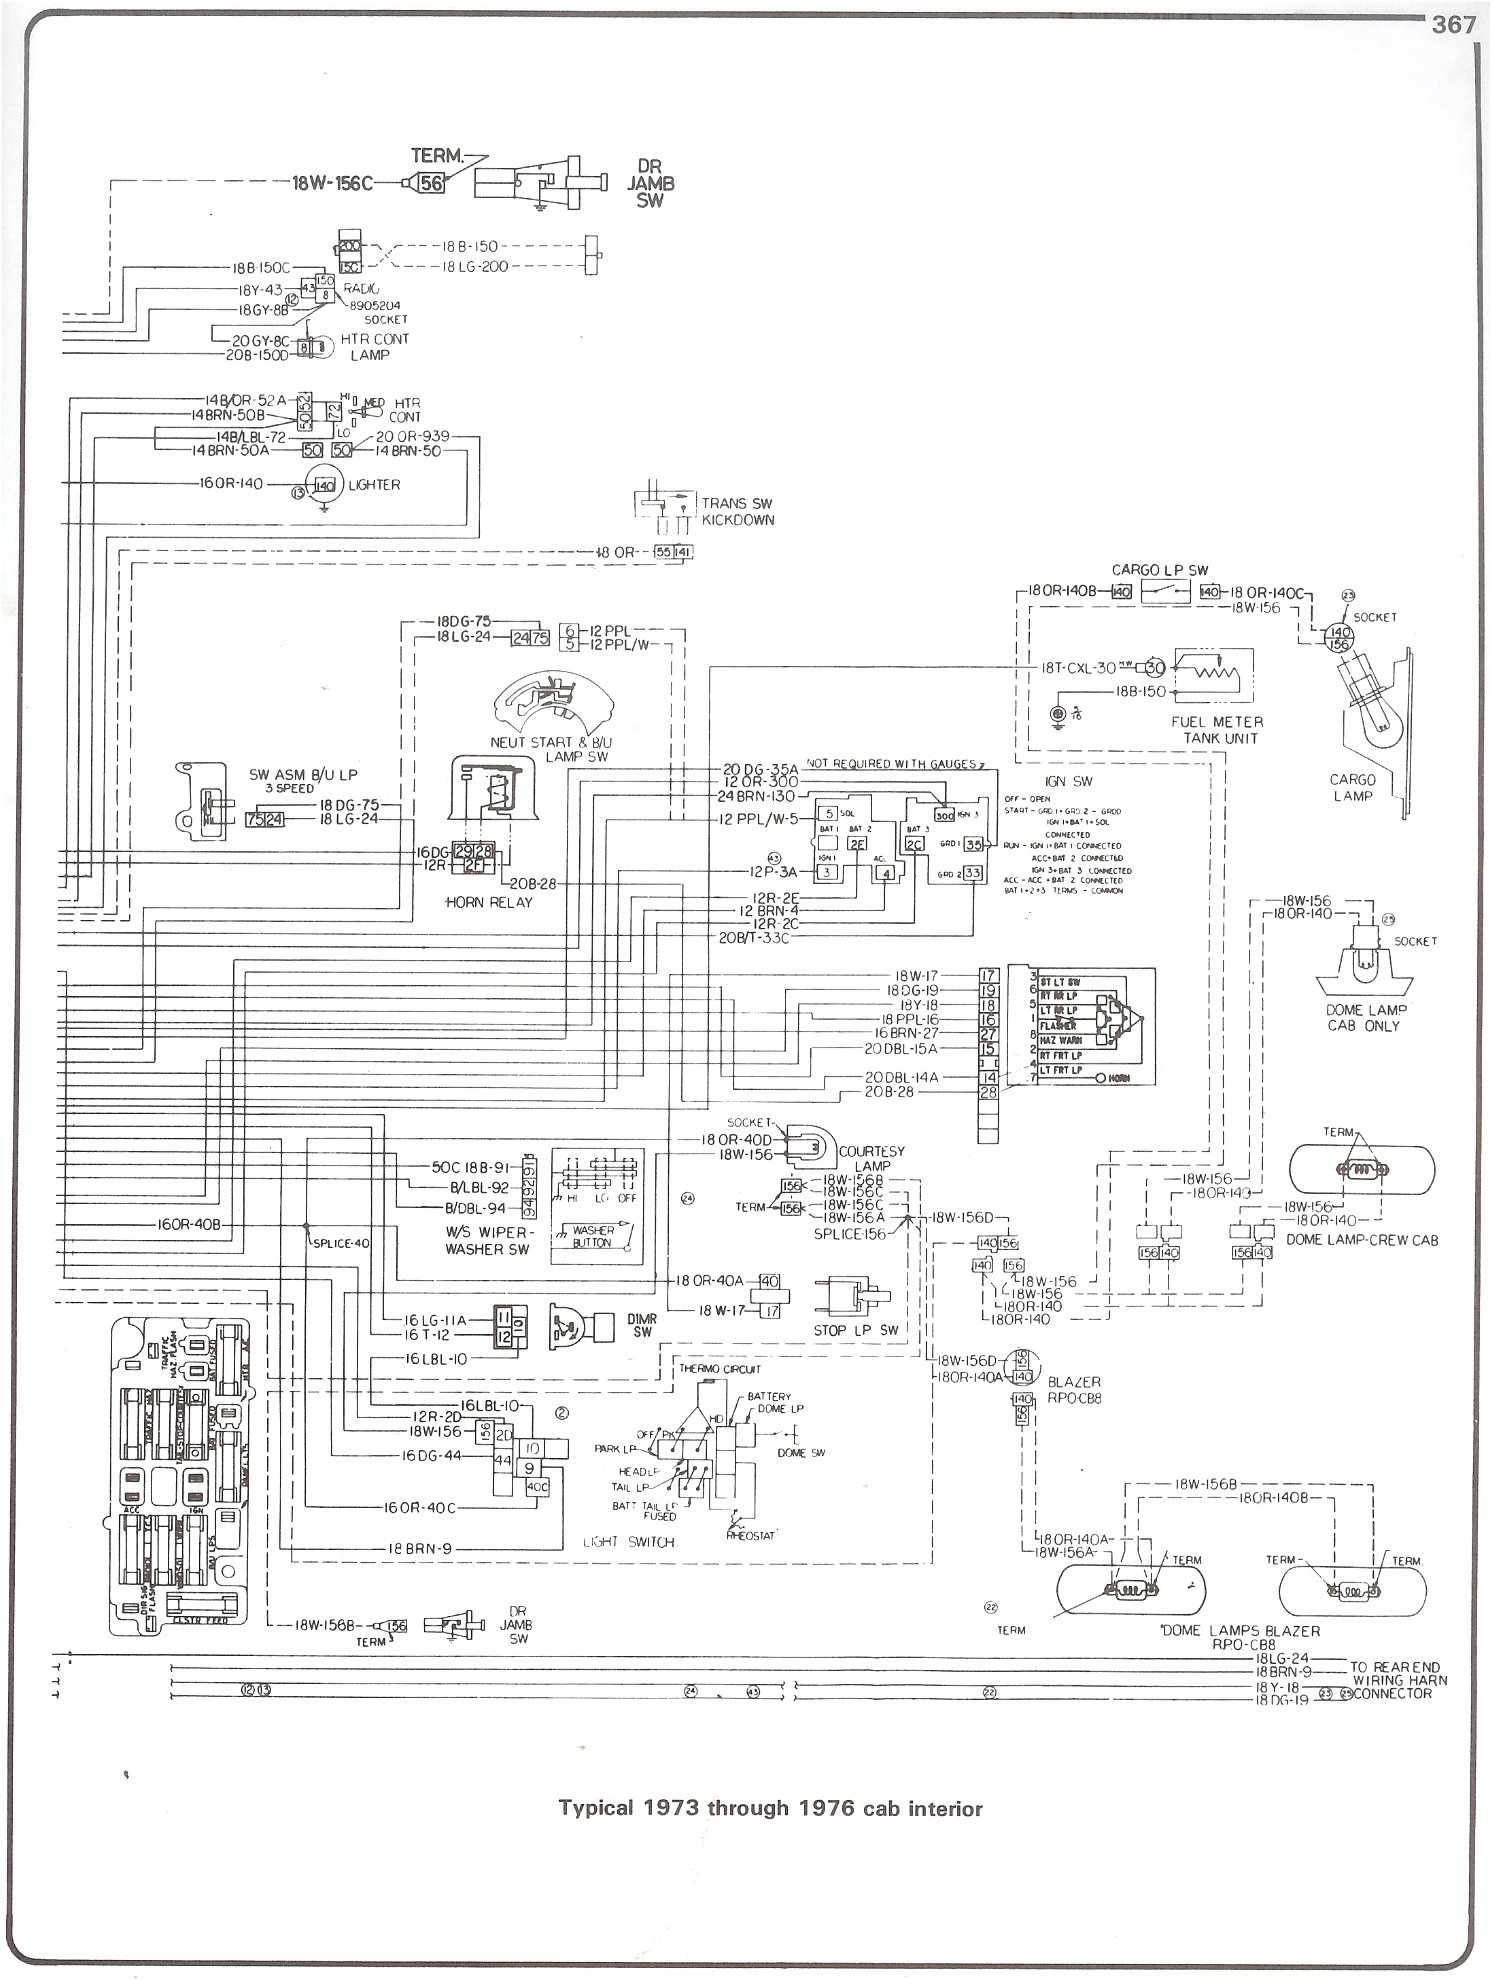 hight resolution of gm solenoid wiring 1977 wiring diagram centre complete 73 87 wiring diagramsgm solenoid wiring 1977 19